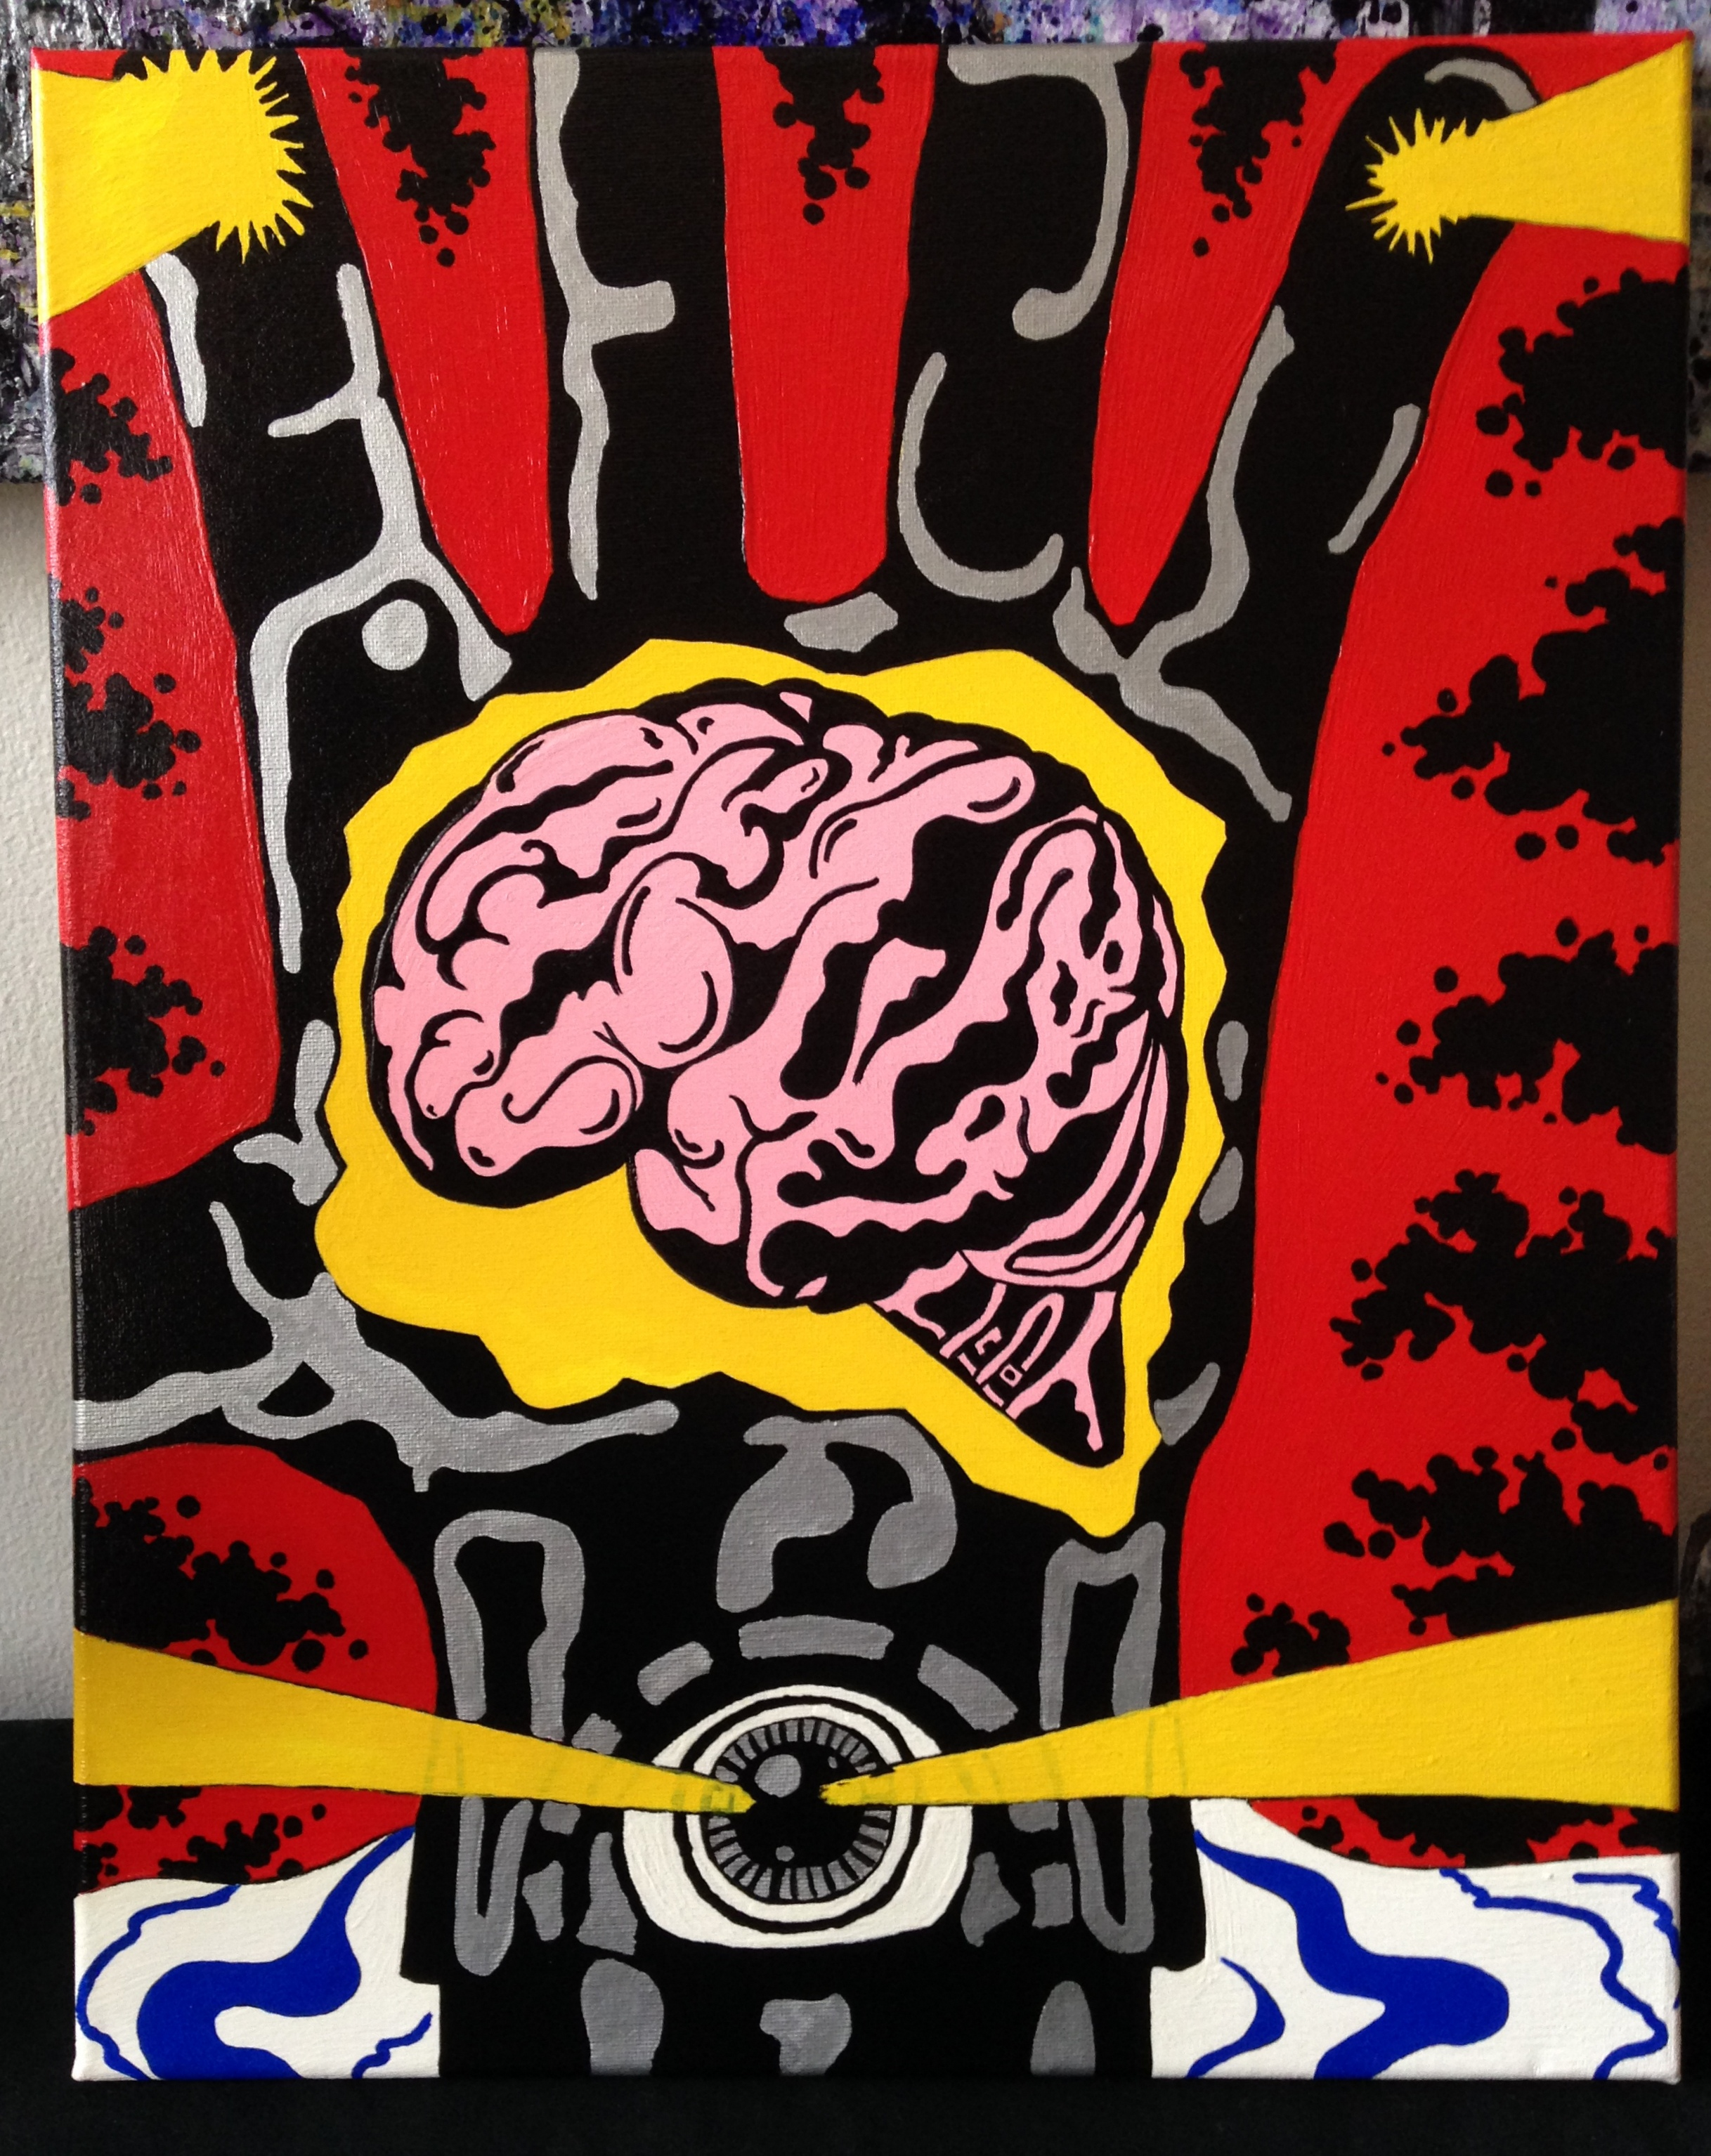 for sale behold the awesomizer comic book pop art painting inspired by jack kirby 16 20. Black Bedroom Furniture Sets. Home Design Ideas